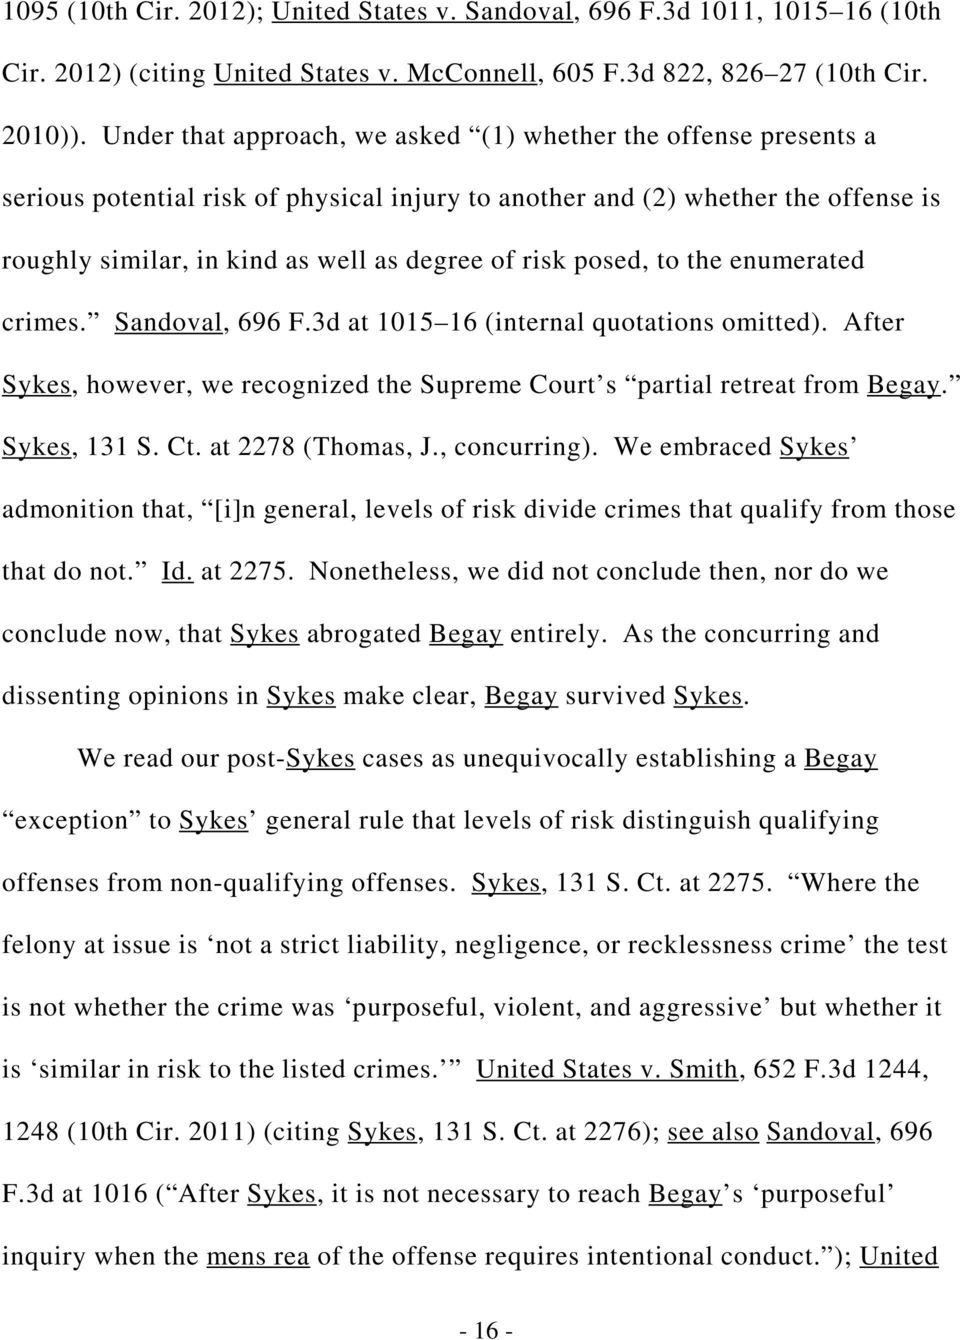 posed, to the enumerated crimes. Sandoval, 696 F.3d at 1015 16 (internal quotations omitted). After Sykes, however, we recognized the Supreme Court s partial retreat from Begay. Sykes, 131 S. Ct.